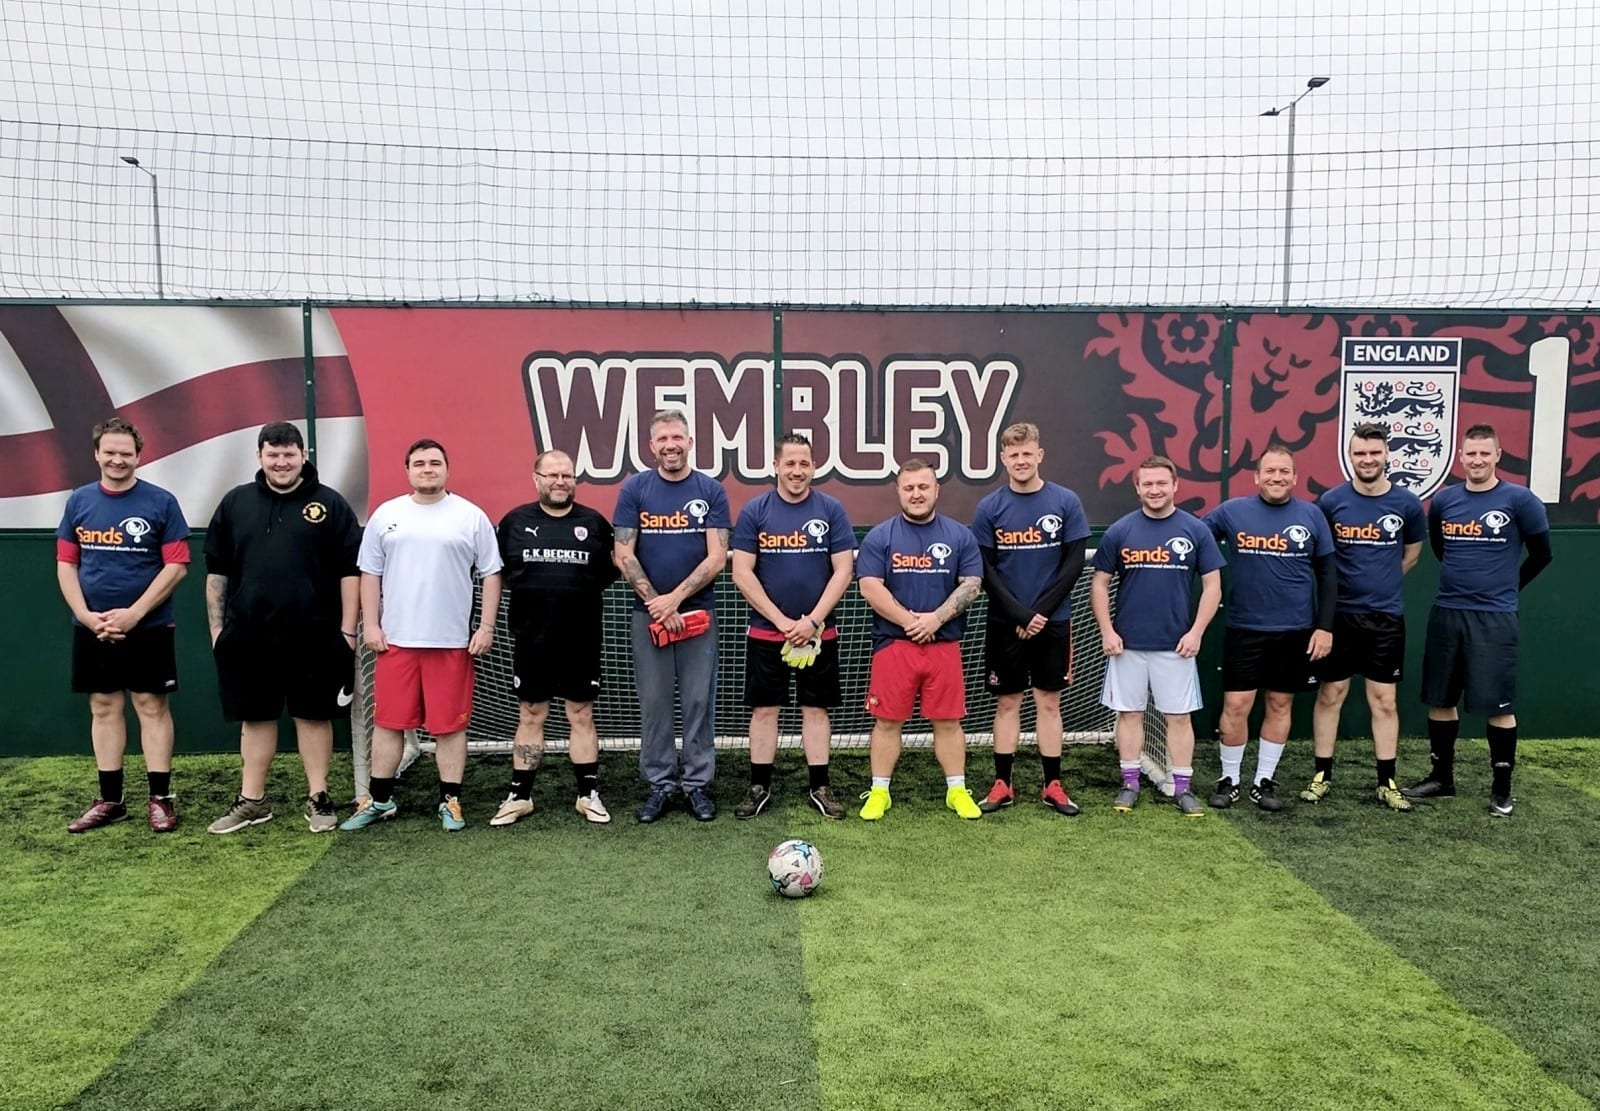 Grieving Dads Have Joined Together To Form One Of Britain's Most Heartbreaking Football Teams